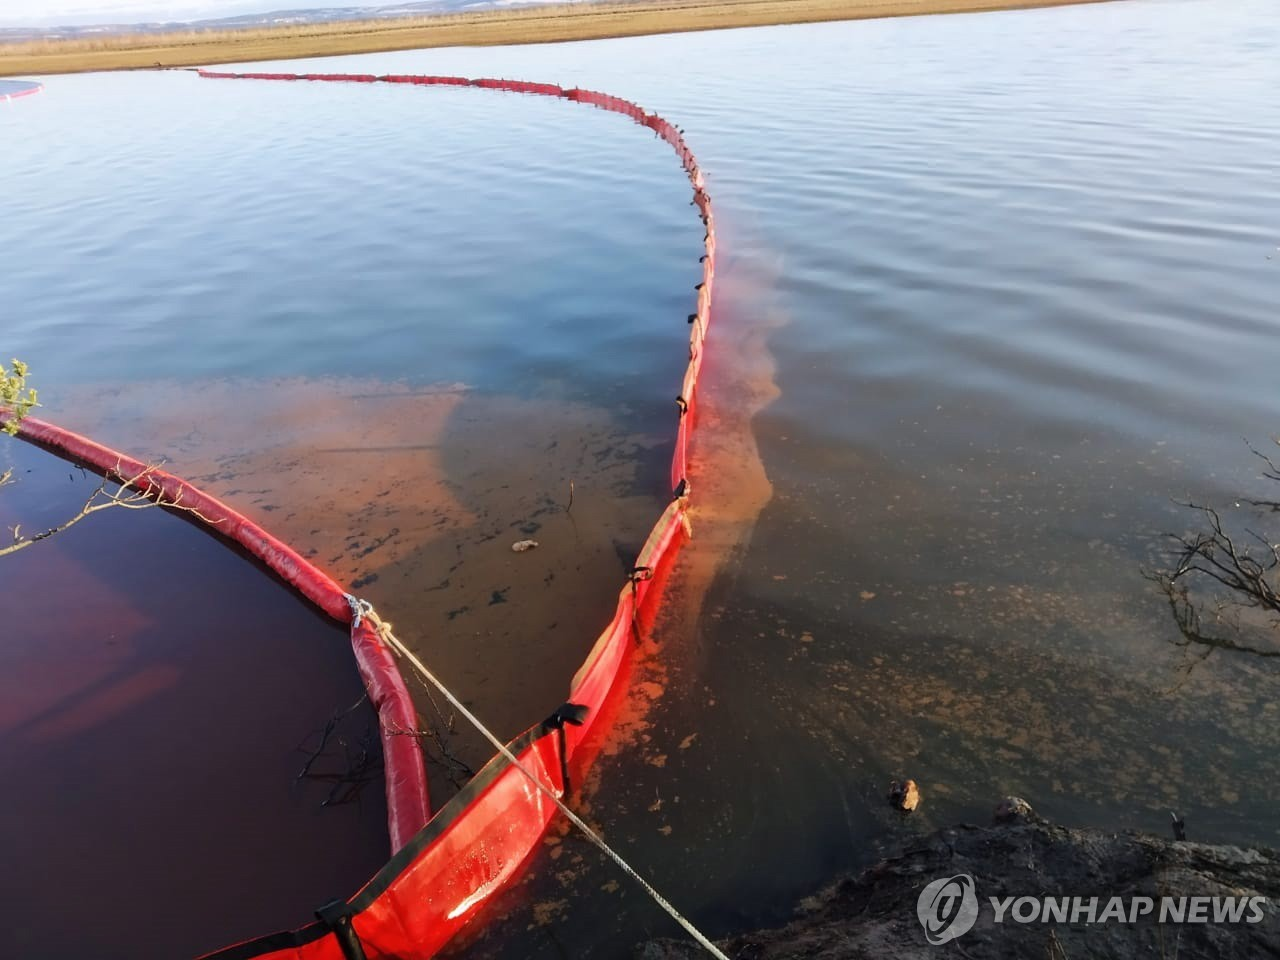 RUSSIA OIL PRODUCTS SPILL